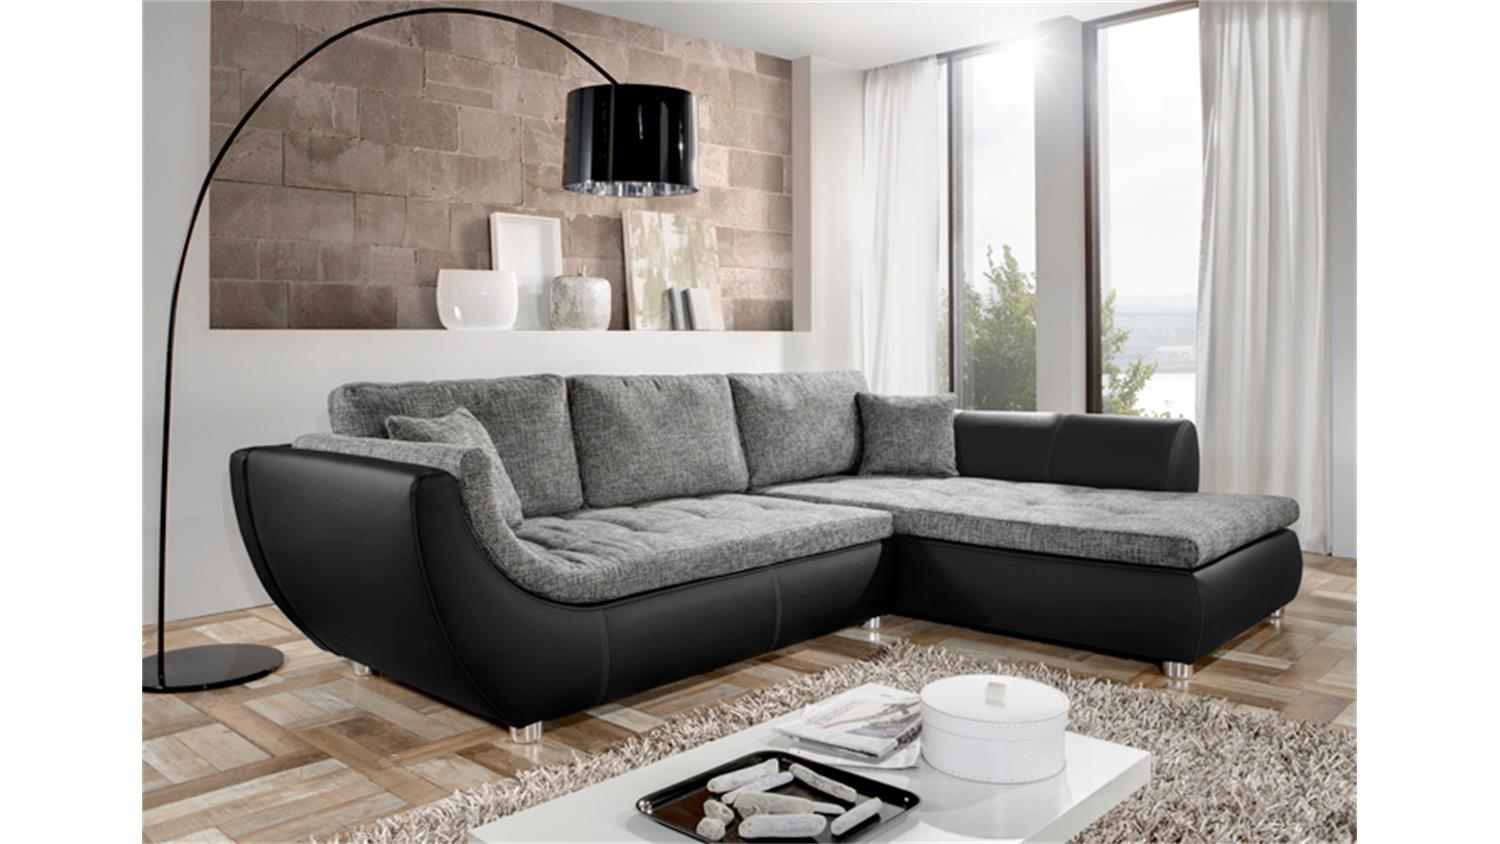 ecksofa wohnlandschaft avus schwarz grau. Black Bedroom Furniture Sets. Home Design Ideas